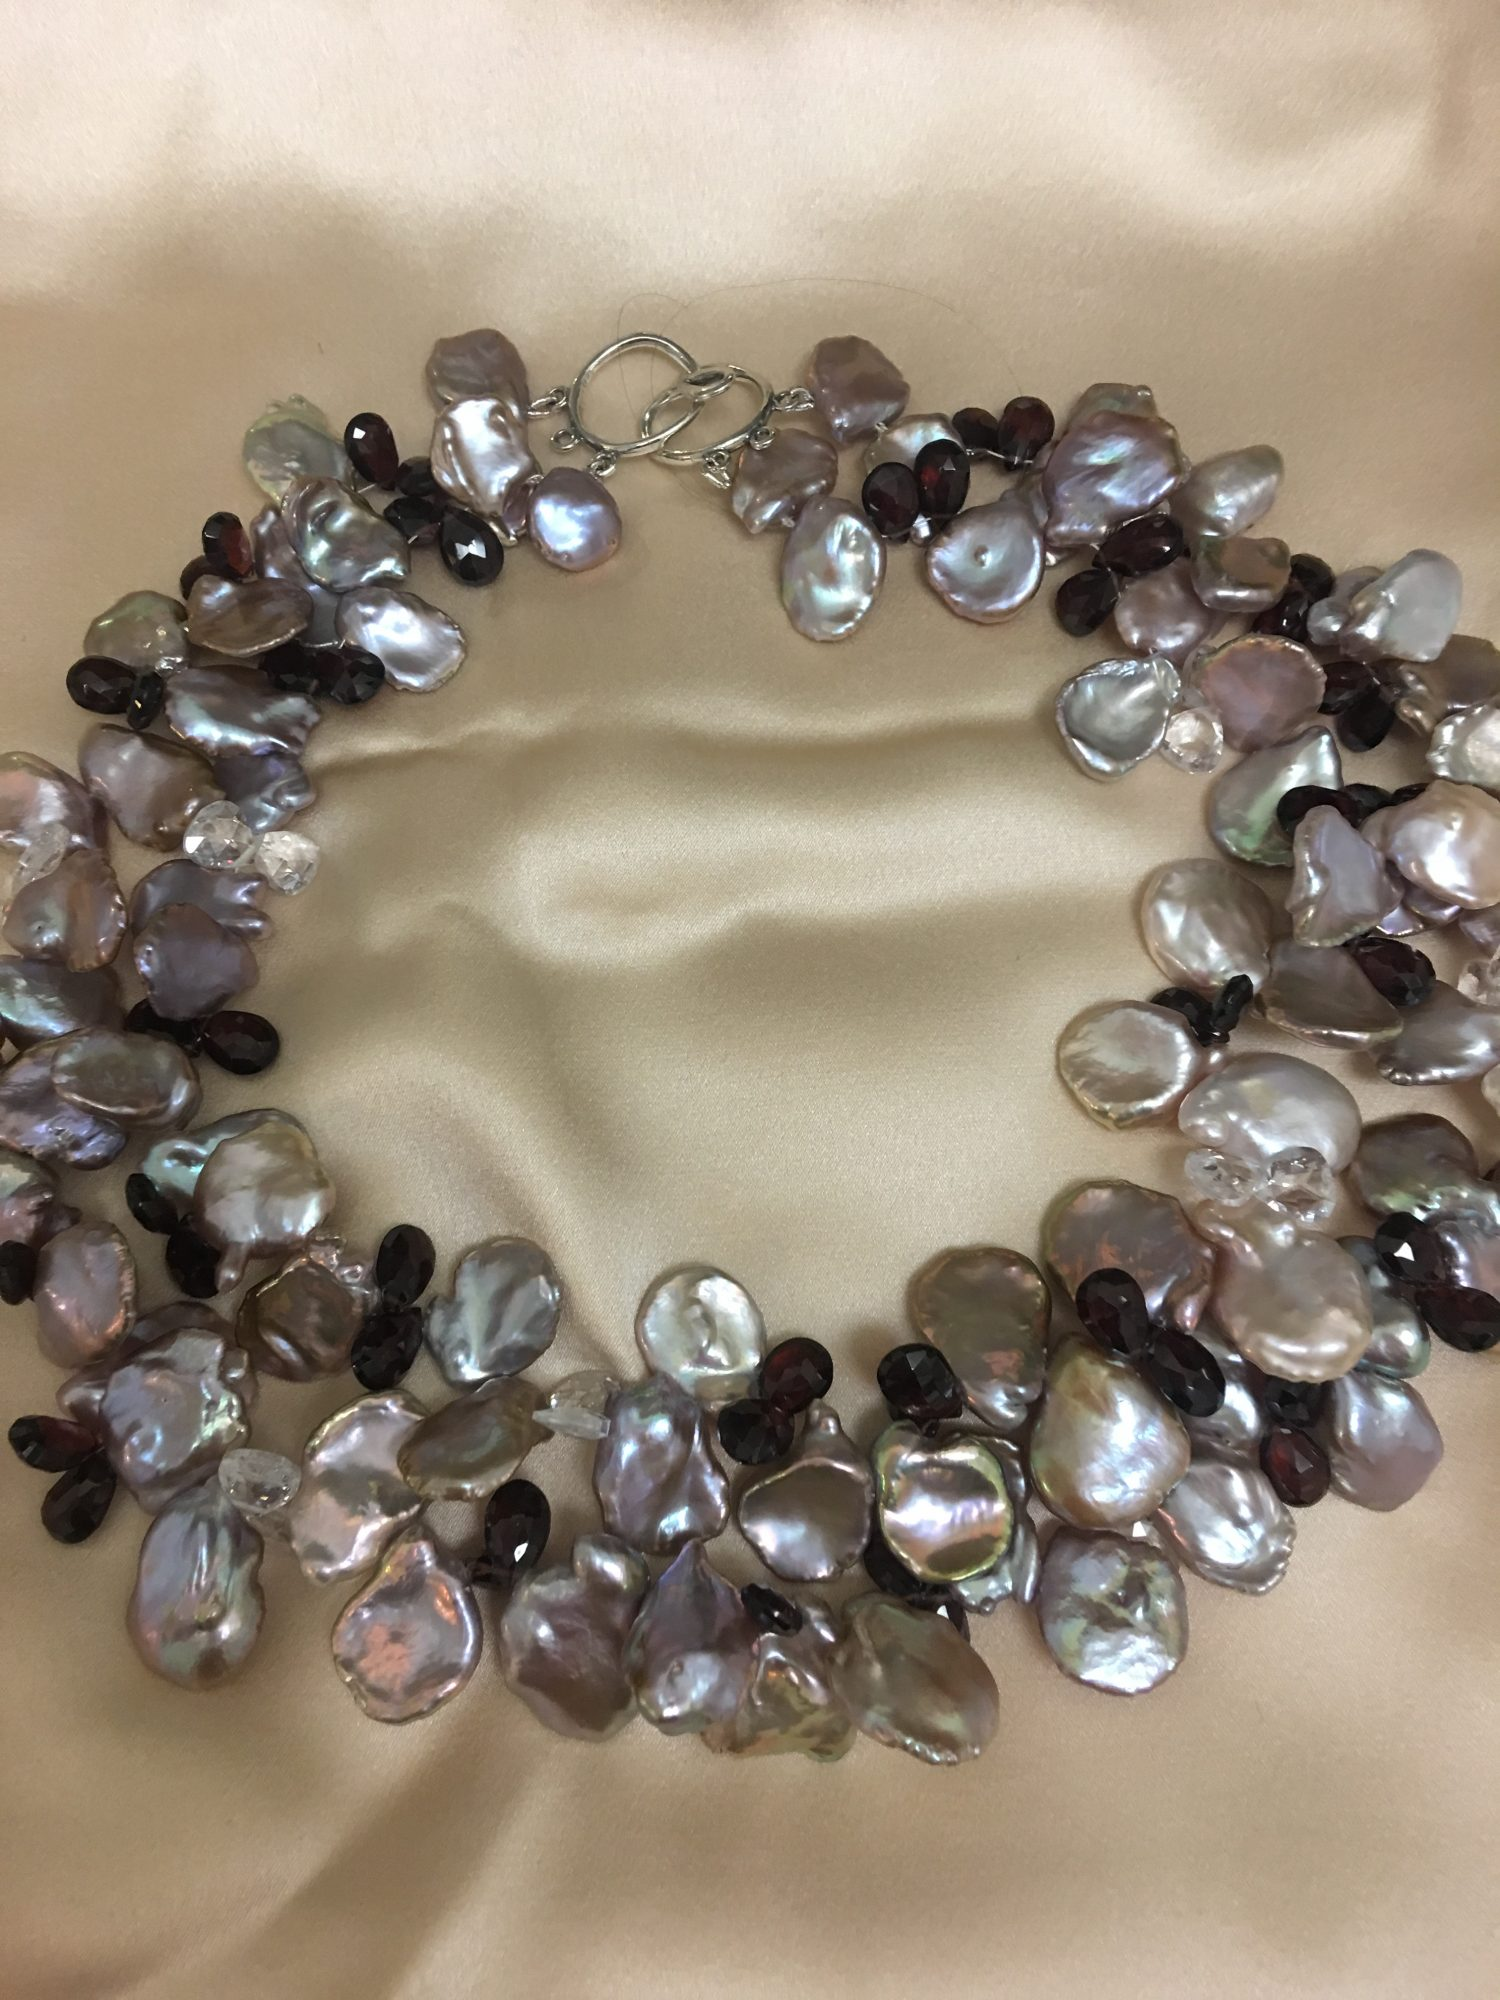 Tan/Mauve Kashi Pearl Necklace With Garnet and Crystal